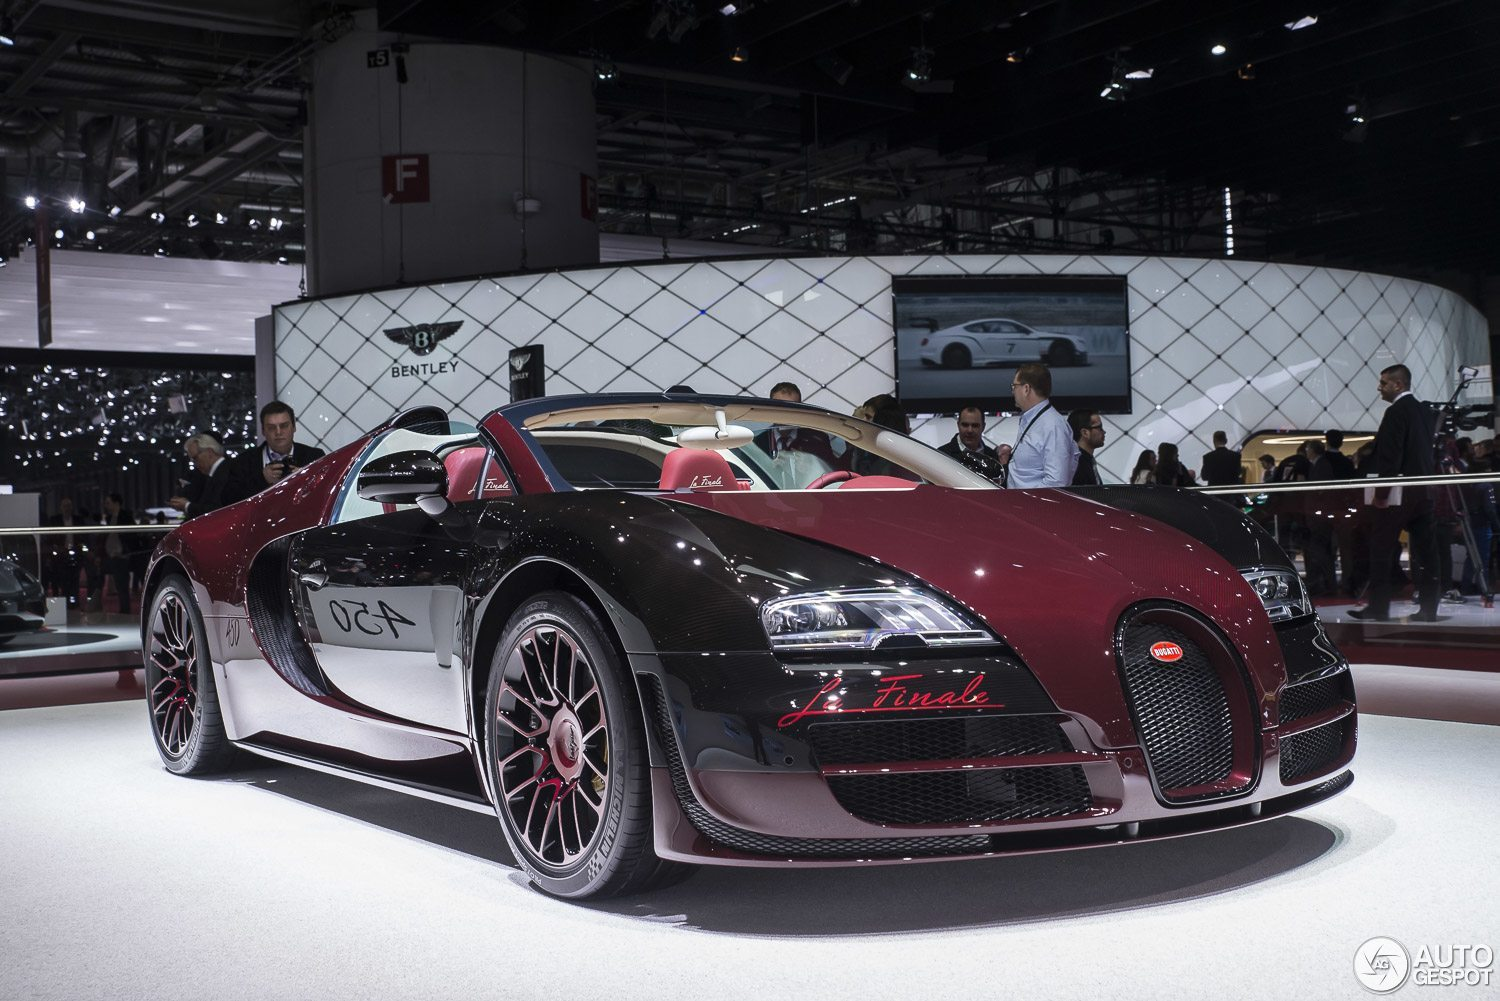 2018 Bugatti Veyron Grand Sport Vitesse La Finale photo - 4